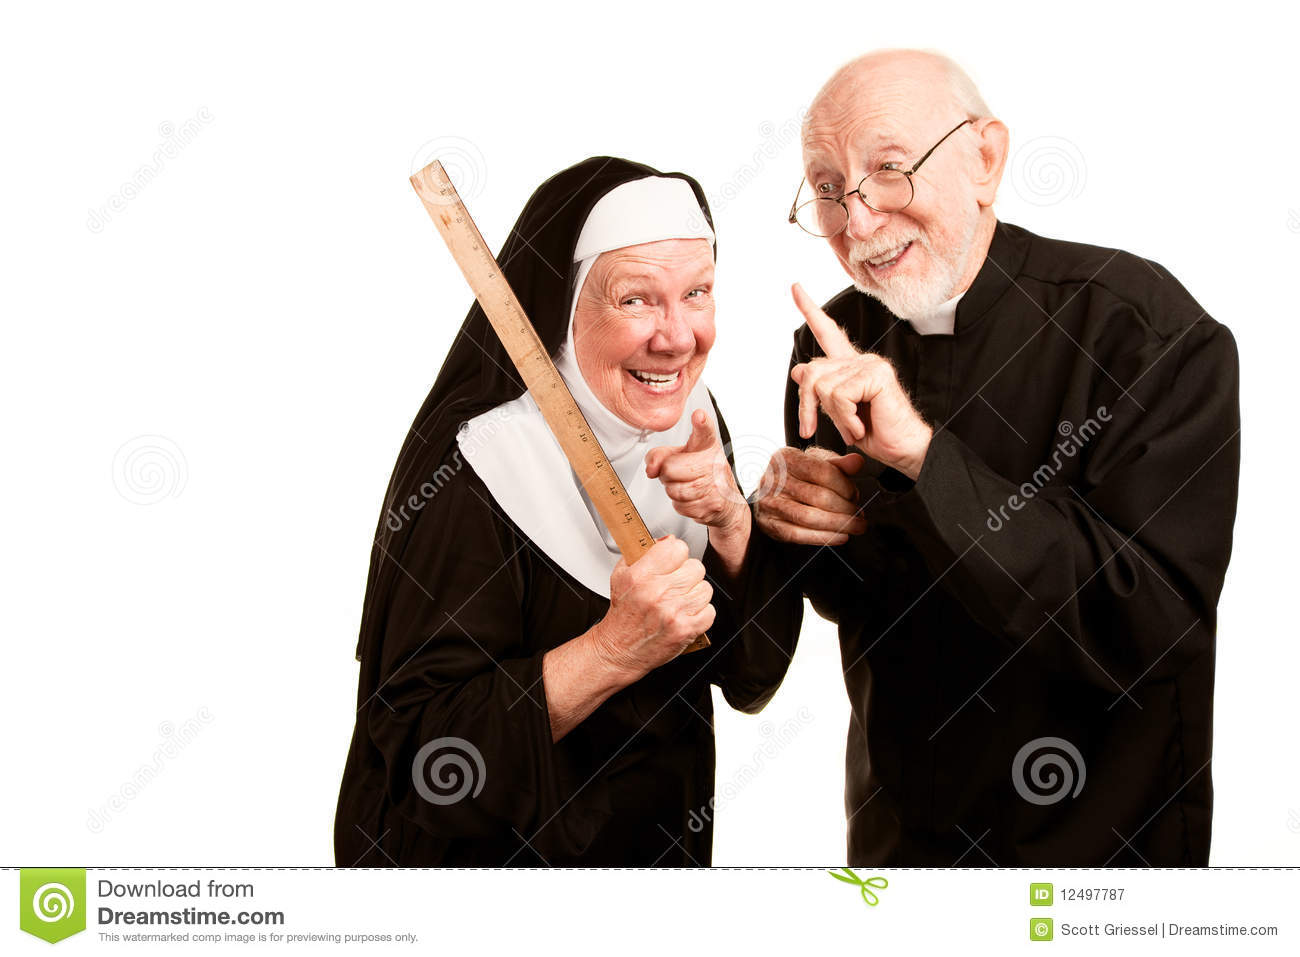 Friendly Priest Admonishes Angry Nun For Using Ruler As A Corporal